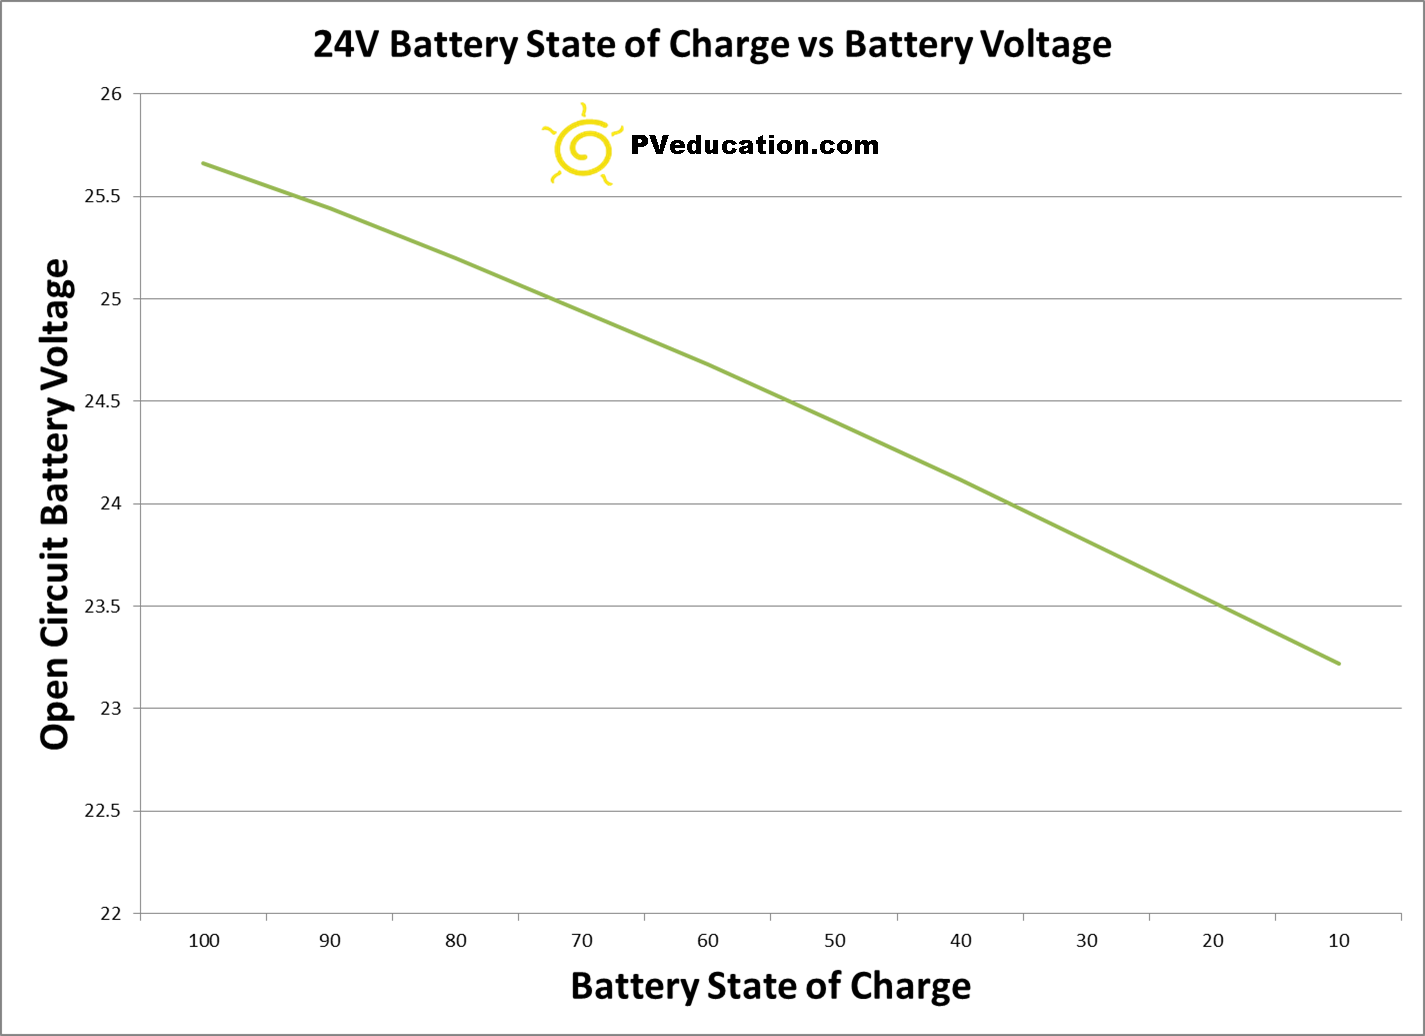 State Of Charge 12v Battery : Battery state of charge vs voltage